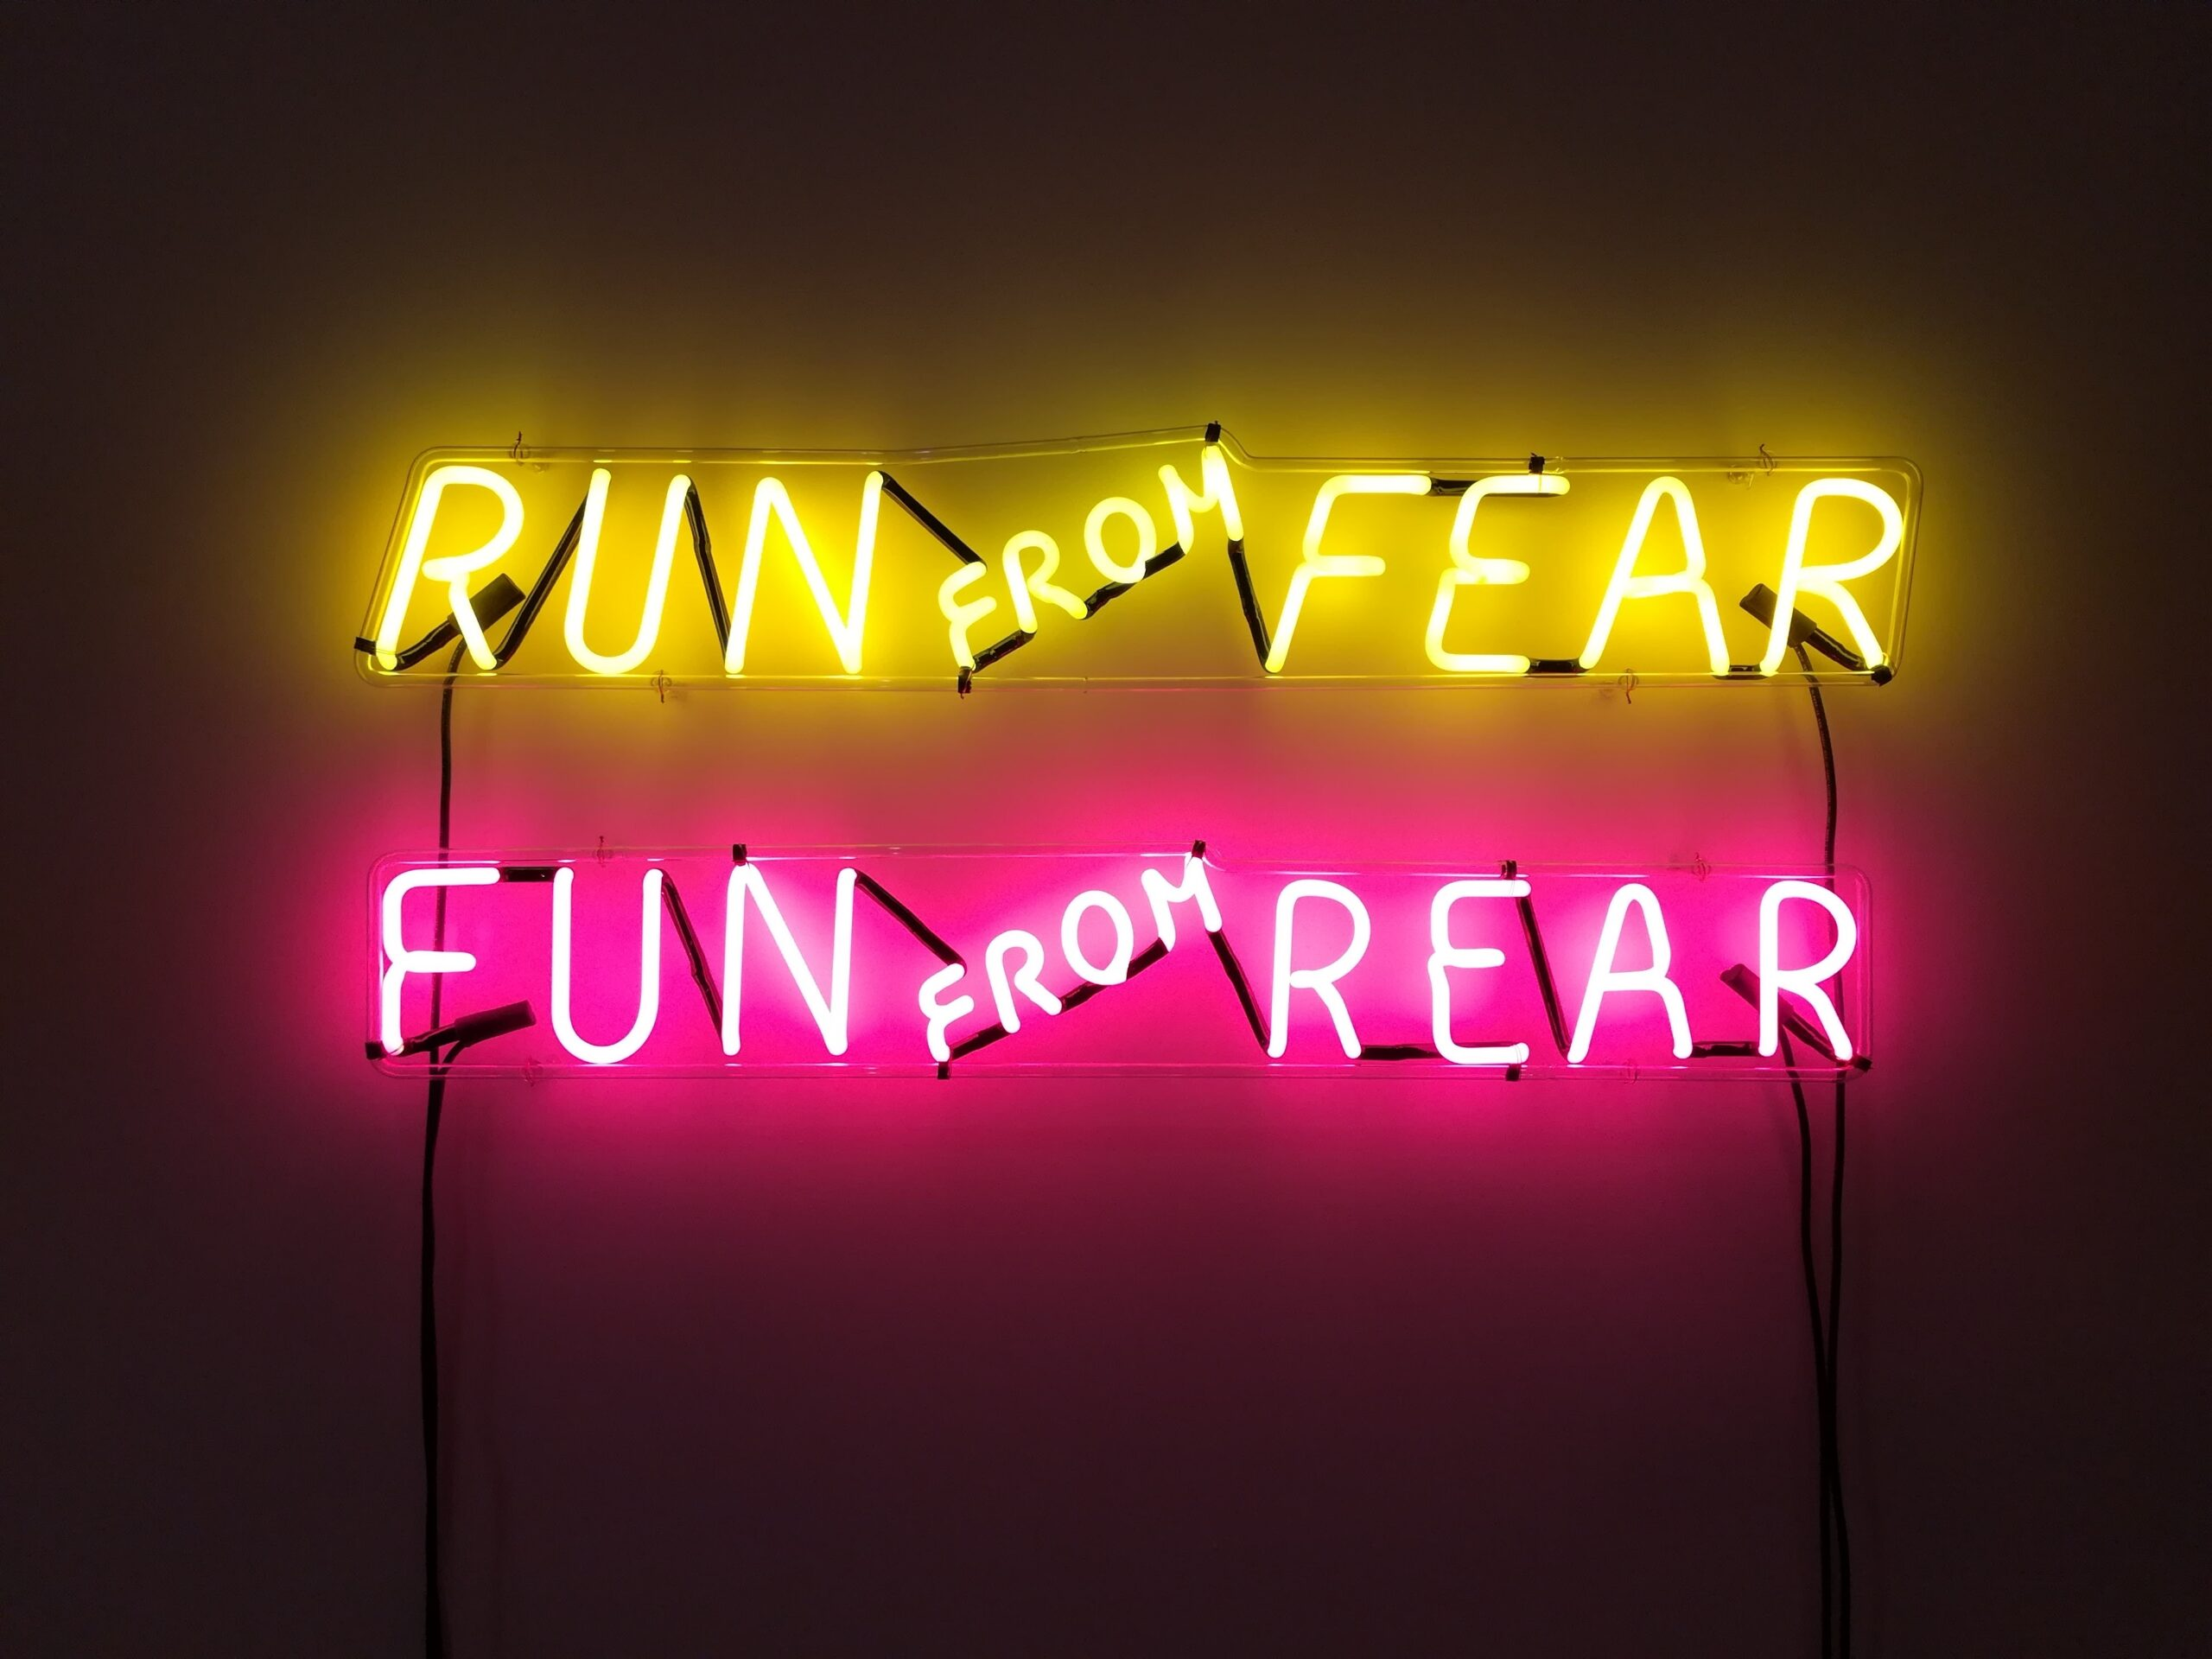 Pushing past the fear with action, daily.